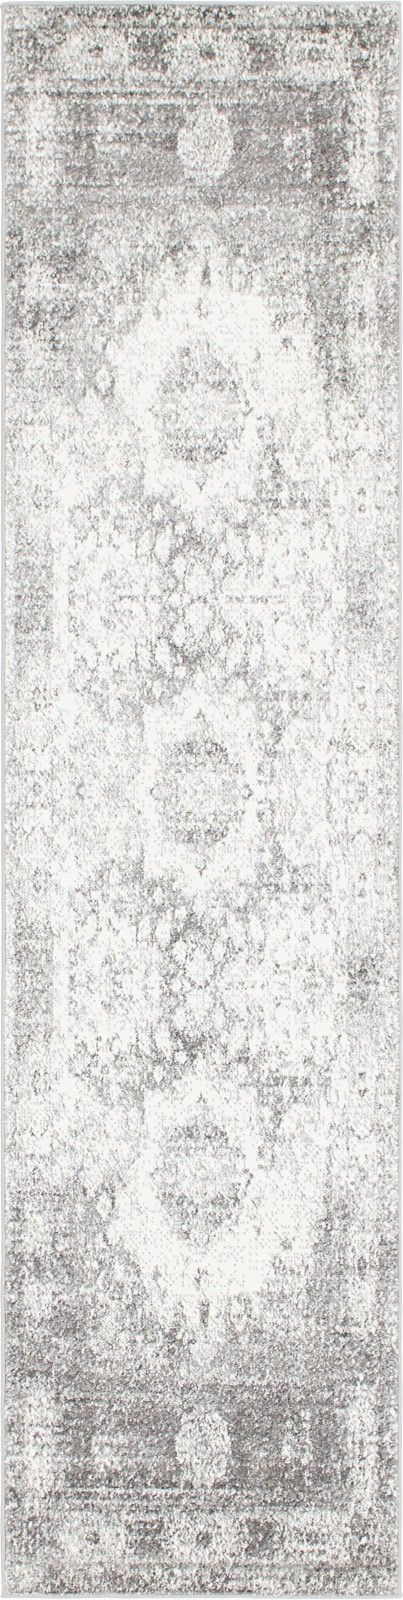 rugpal bianco transitional area rug collection